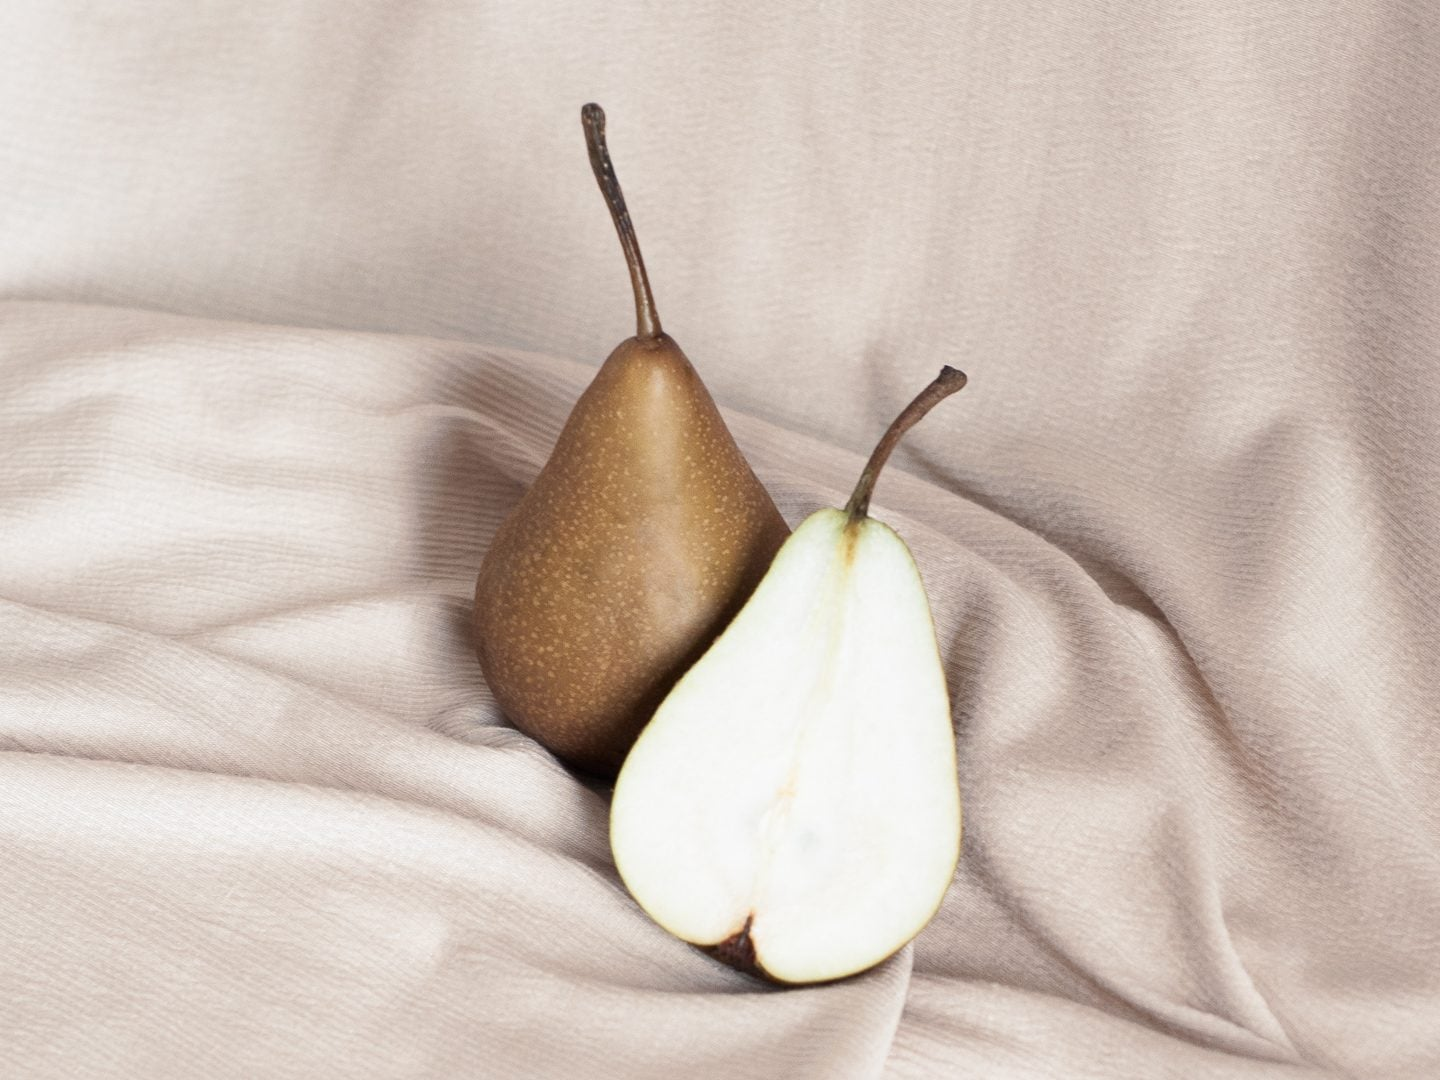 Two pears displayed on a woven blanket